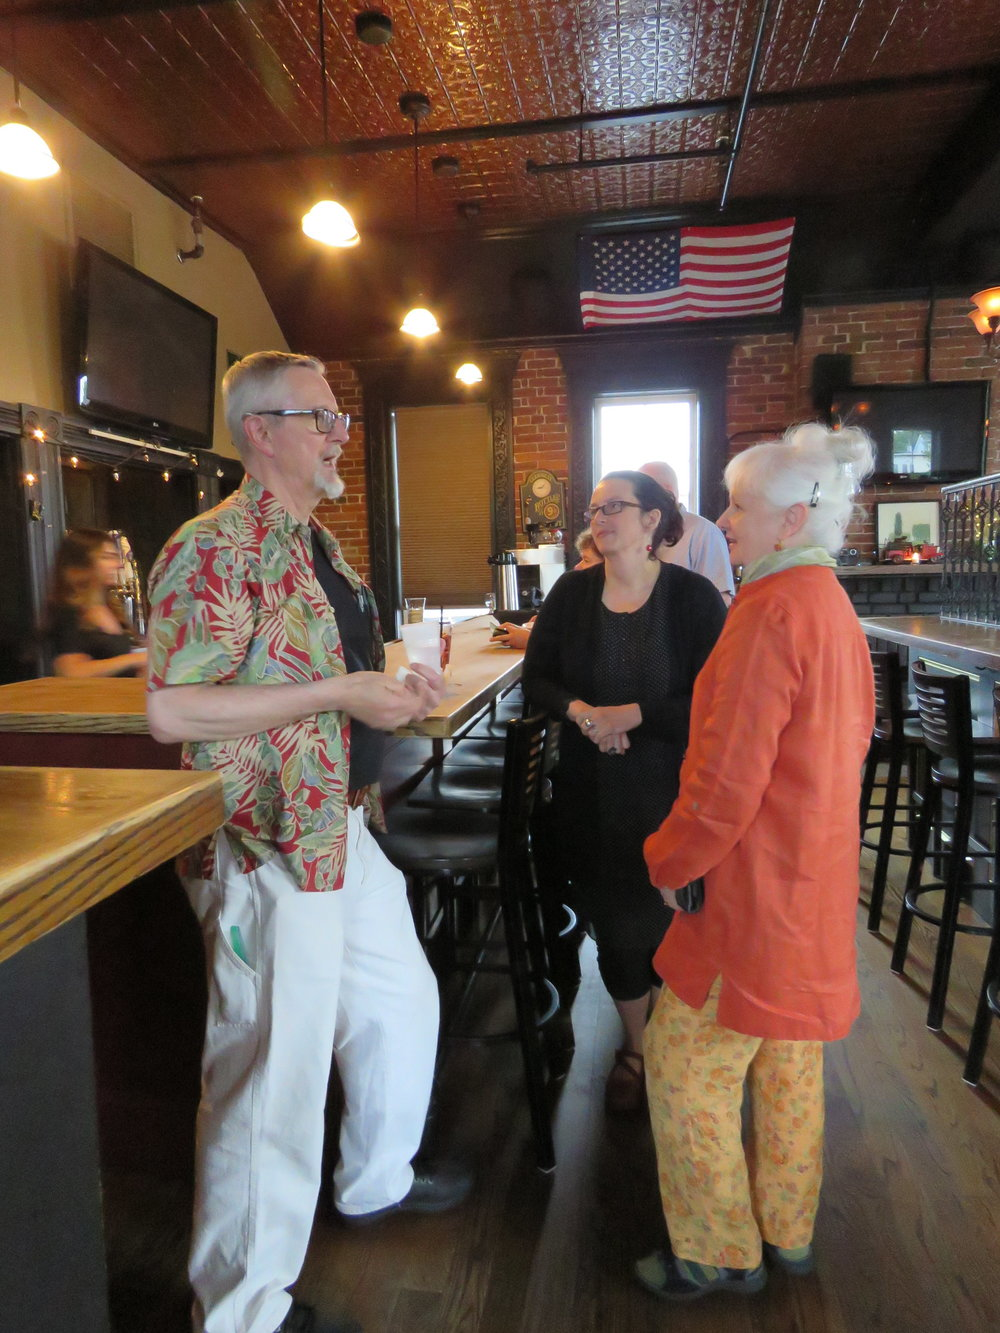 Don Kimball, President of the Poetry Society of NH, Wears the Perfect Shirt to Happy Hour